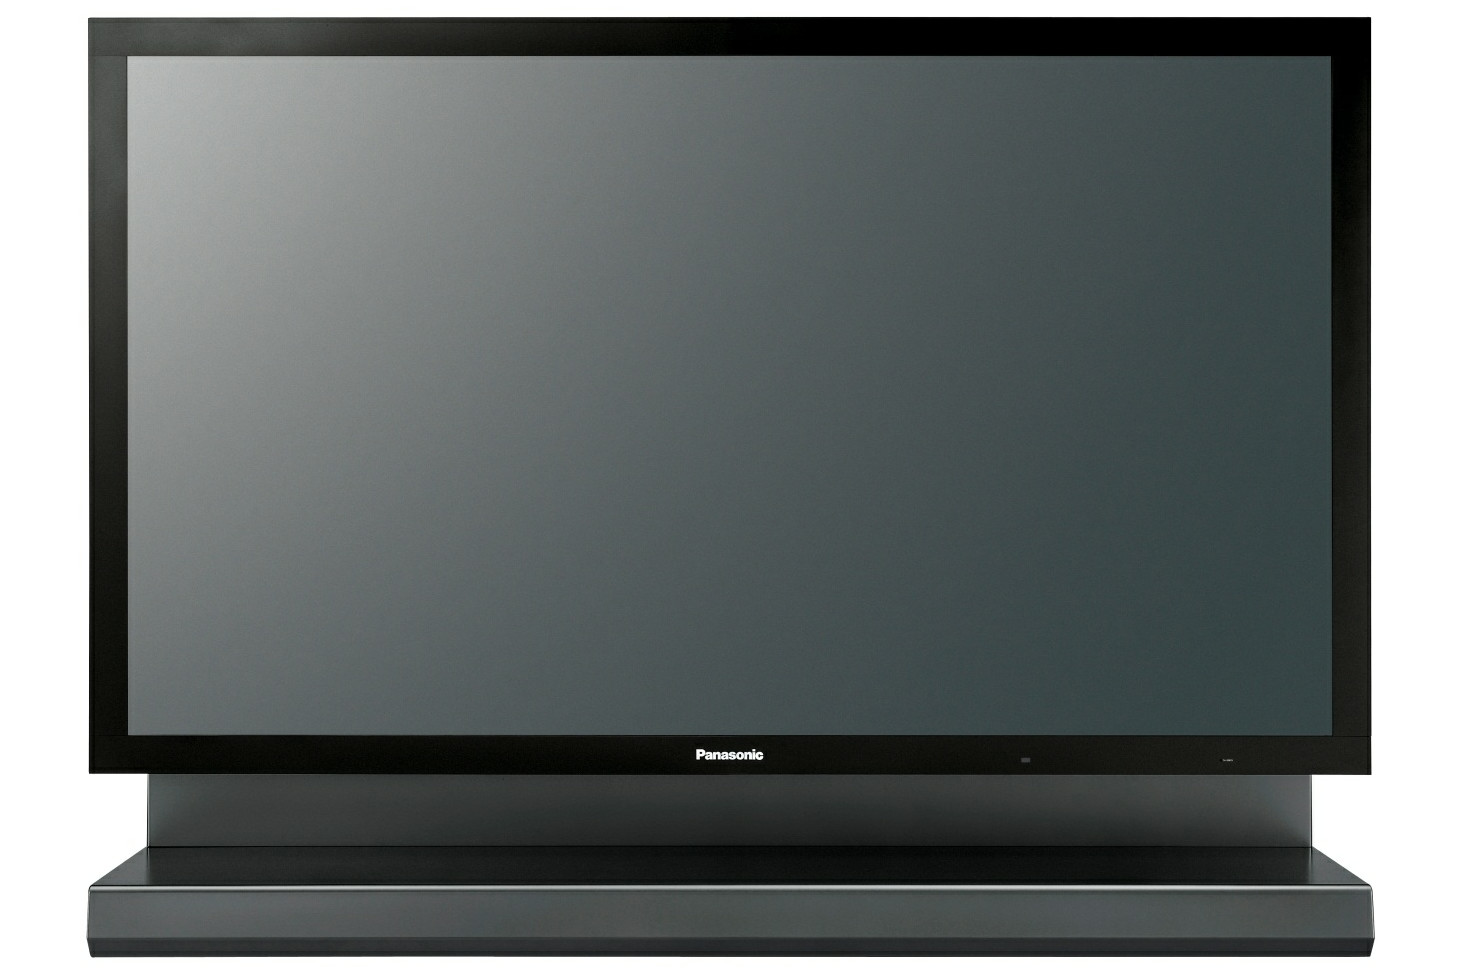 Panasonic's professional plasma display.